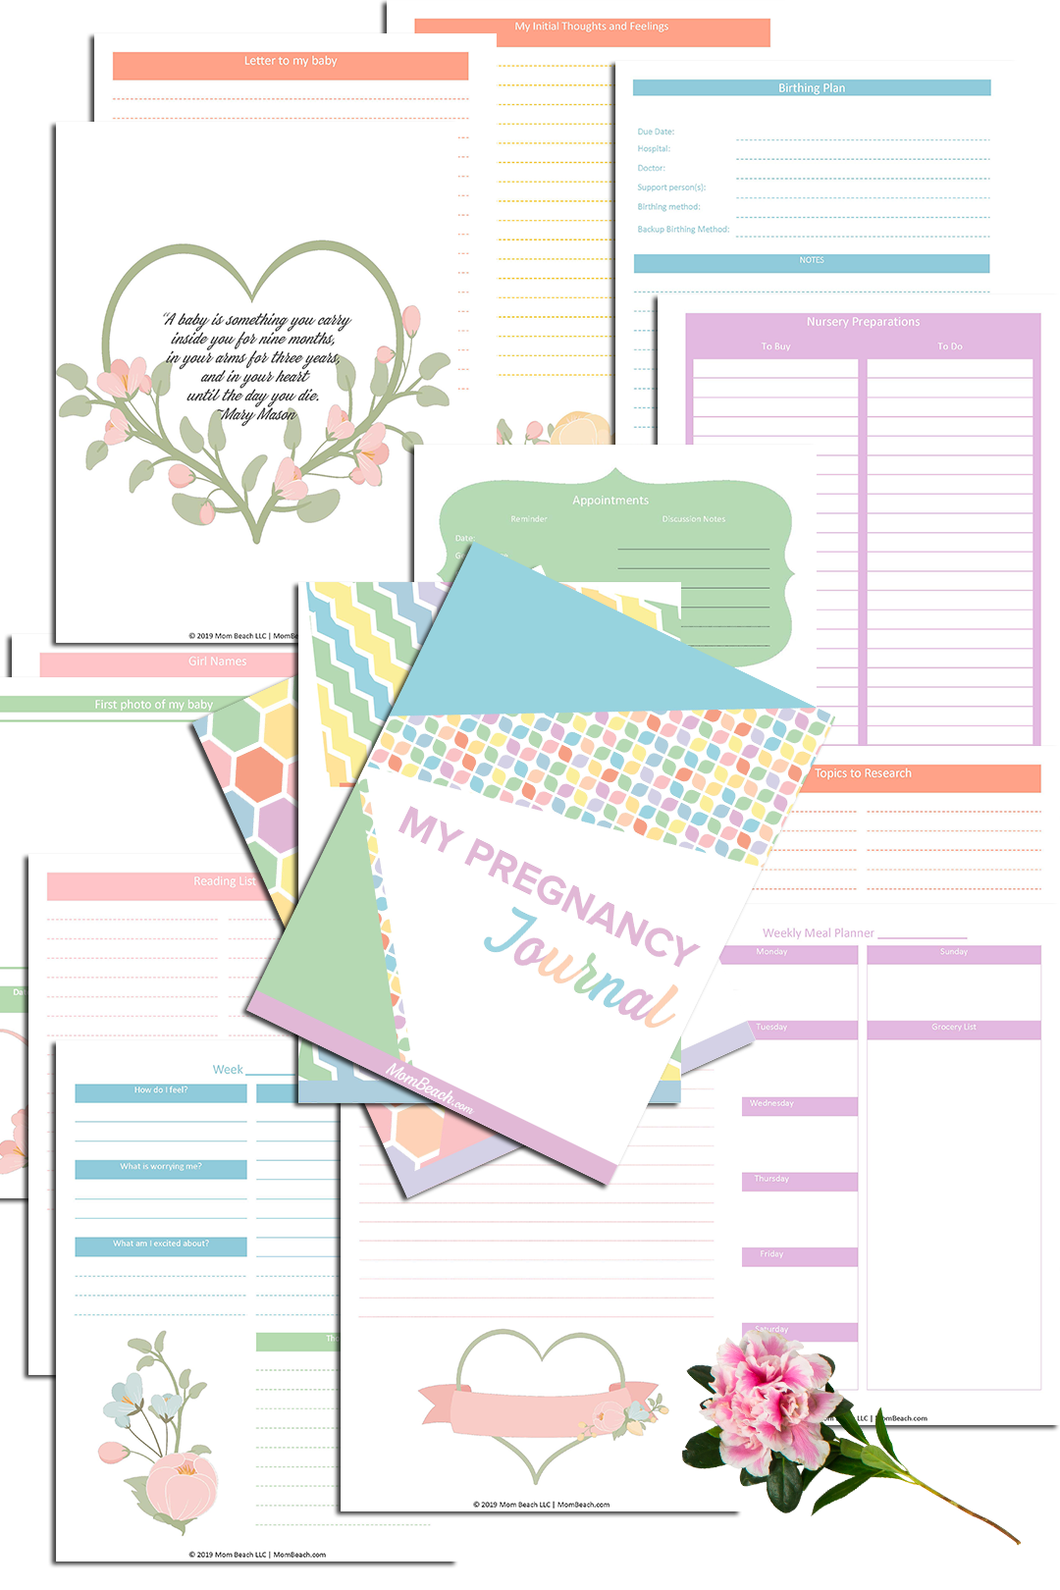 My Pregnancy Journal (189 Pages)